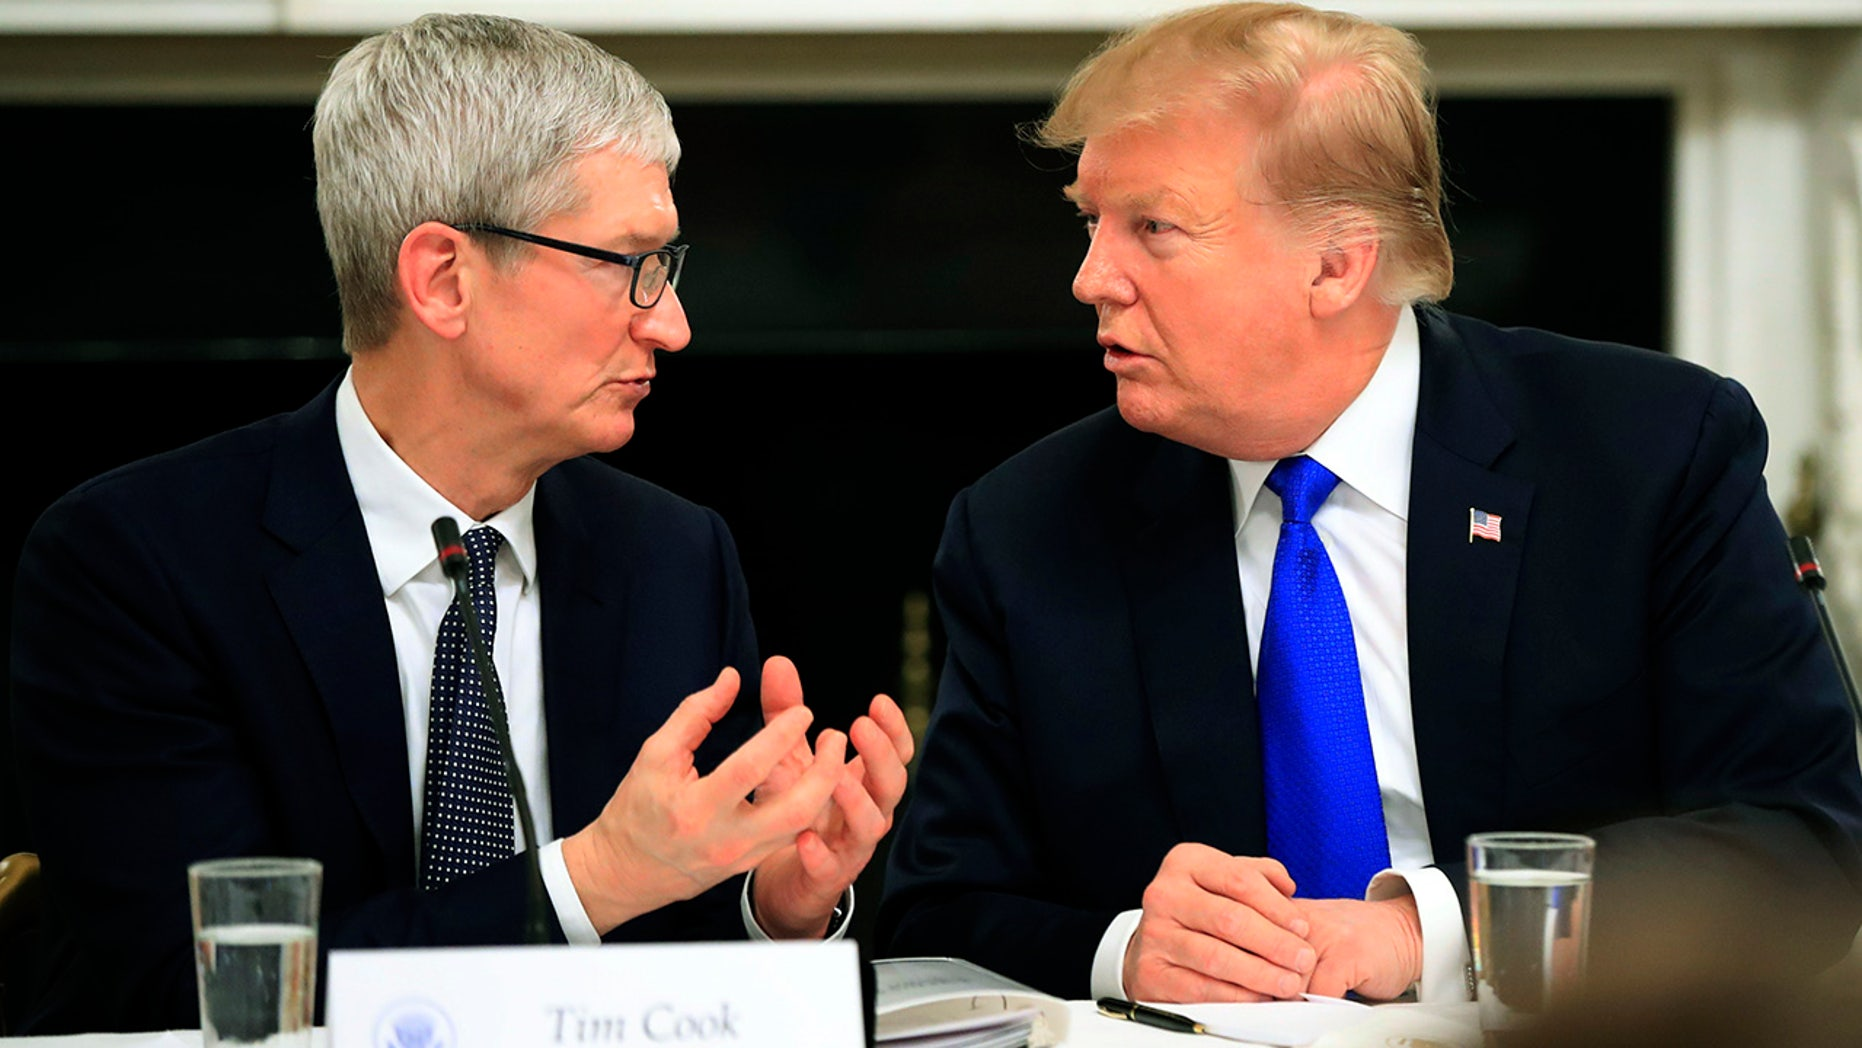 Trump called his friend and Apple CEO Tim Cook 'Tim Apple'